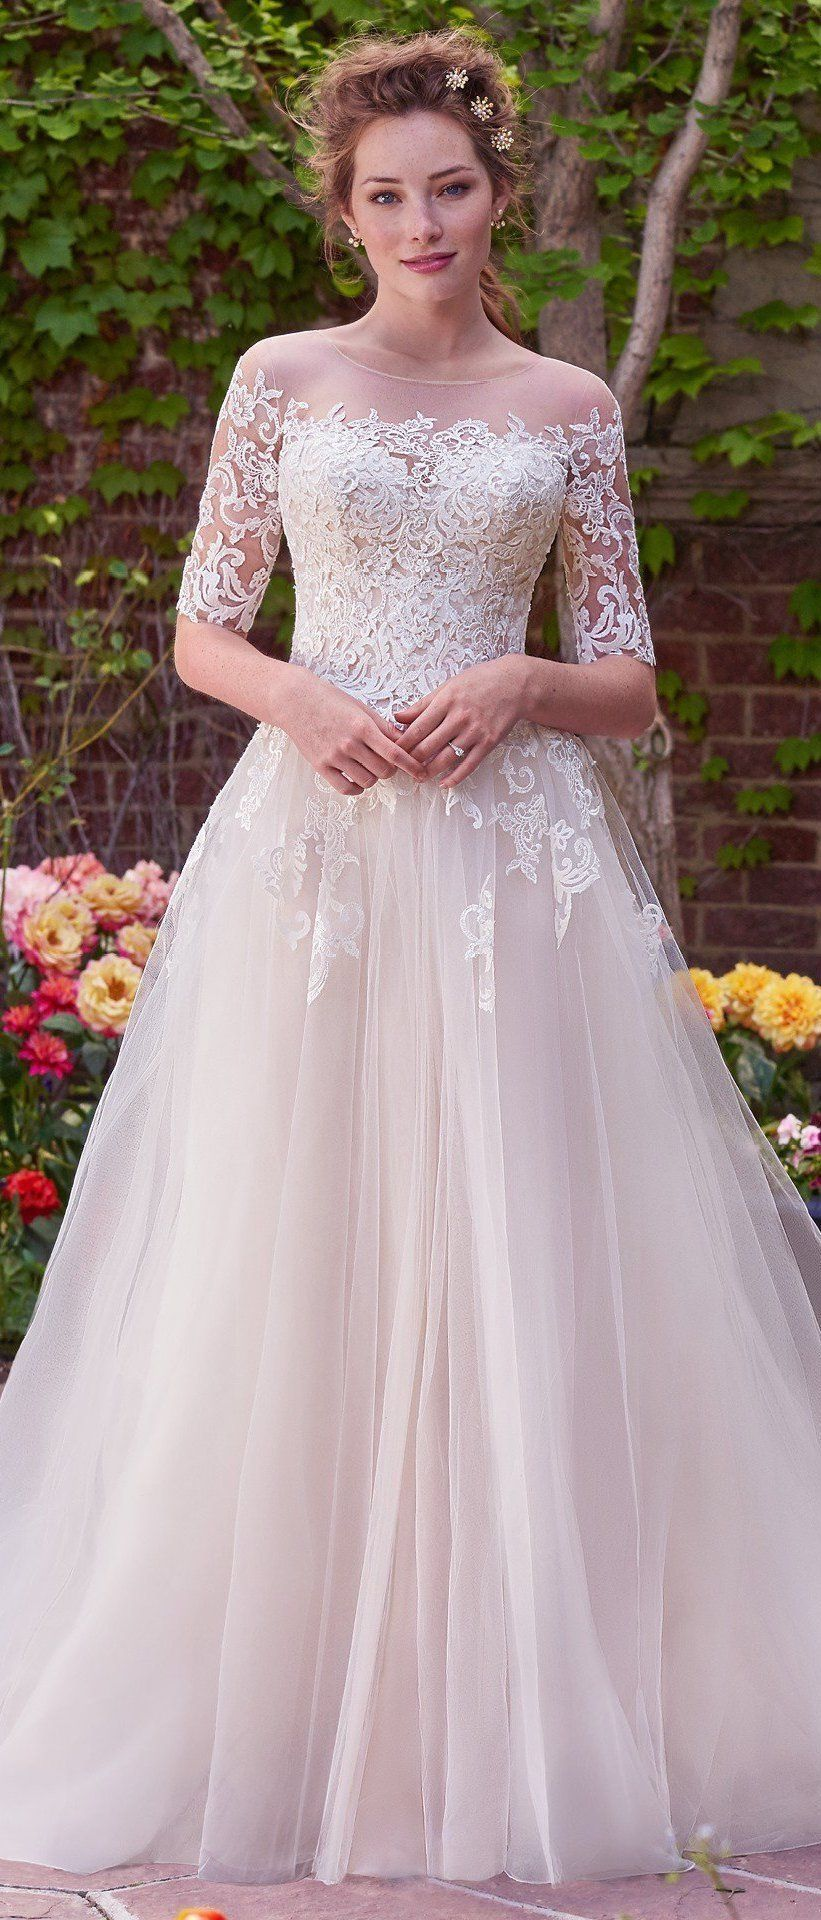 44 The Best Casual Wedding Dresses for Outdoor Weddings | Casual ...